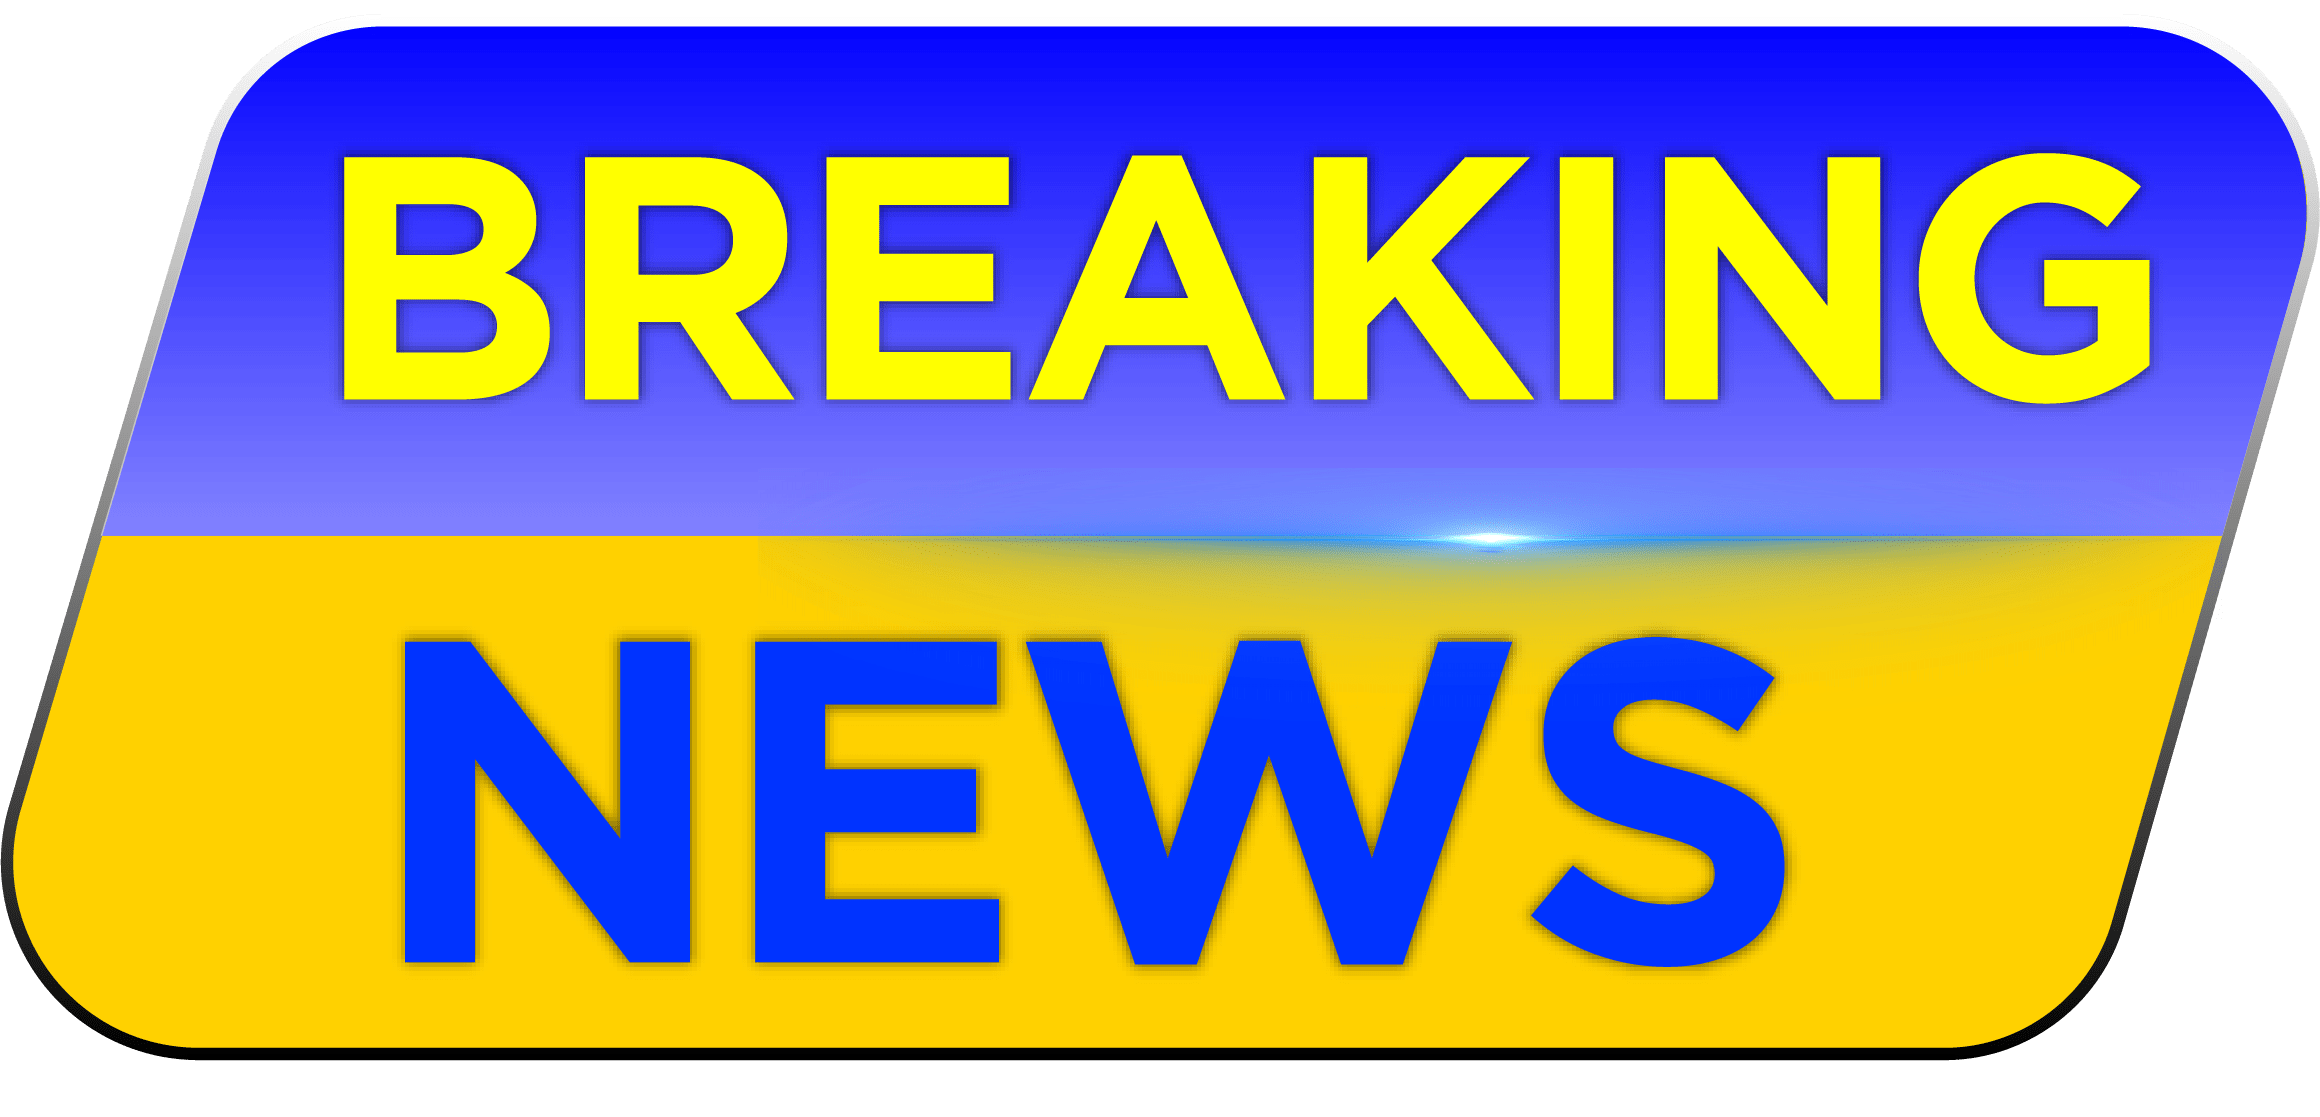 Download Breaking News Sticker High Quality PNG Graphic - MTC TUTORIALS